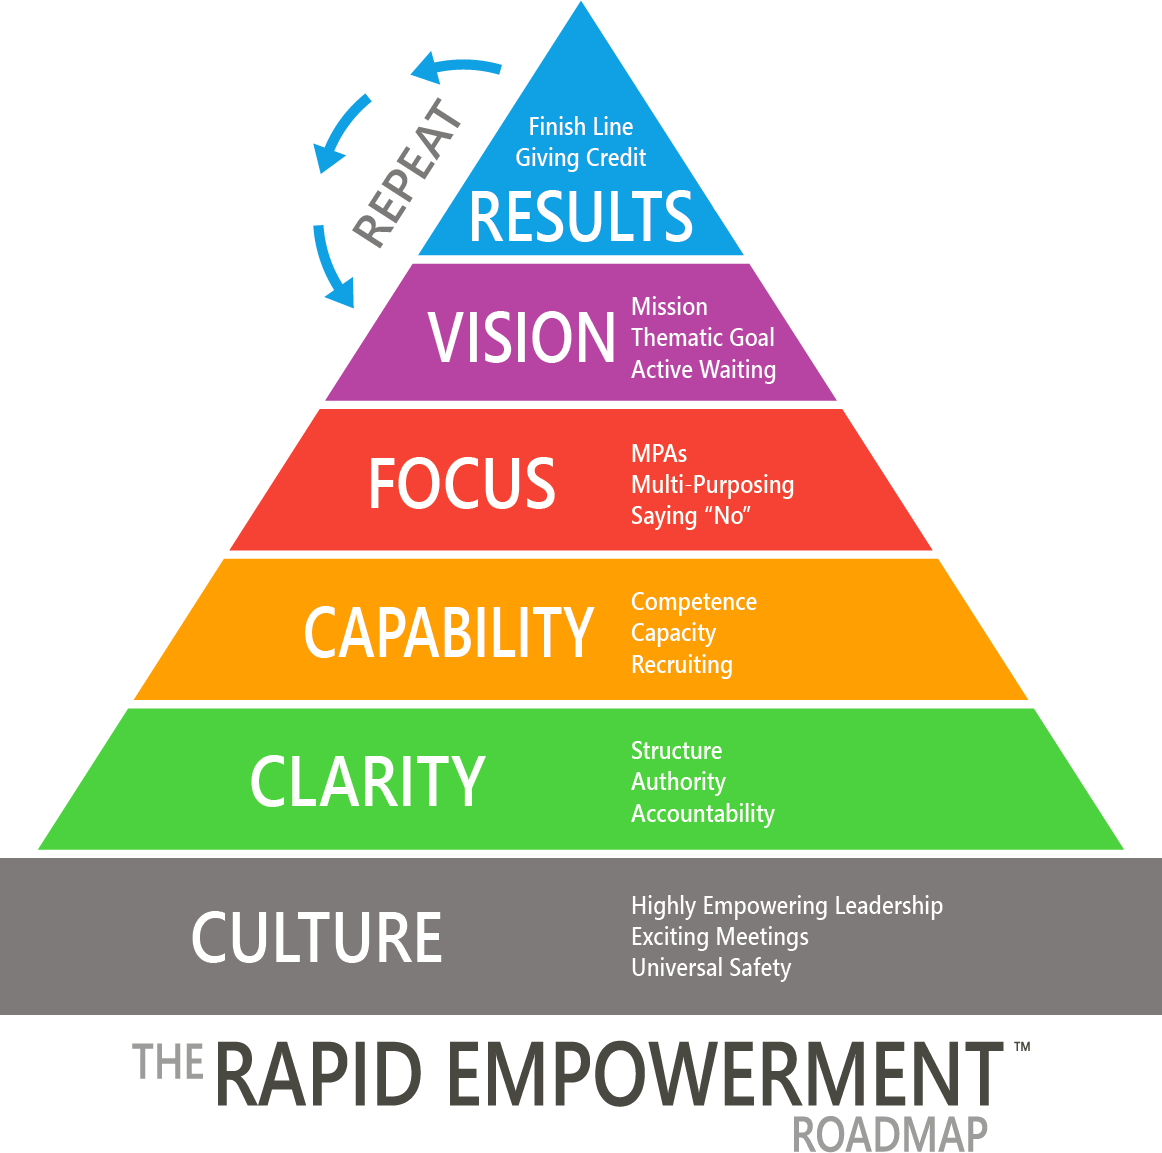 The Rapid Empowerment Roadmap - Empowering Leadership Made Easy